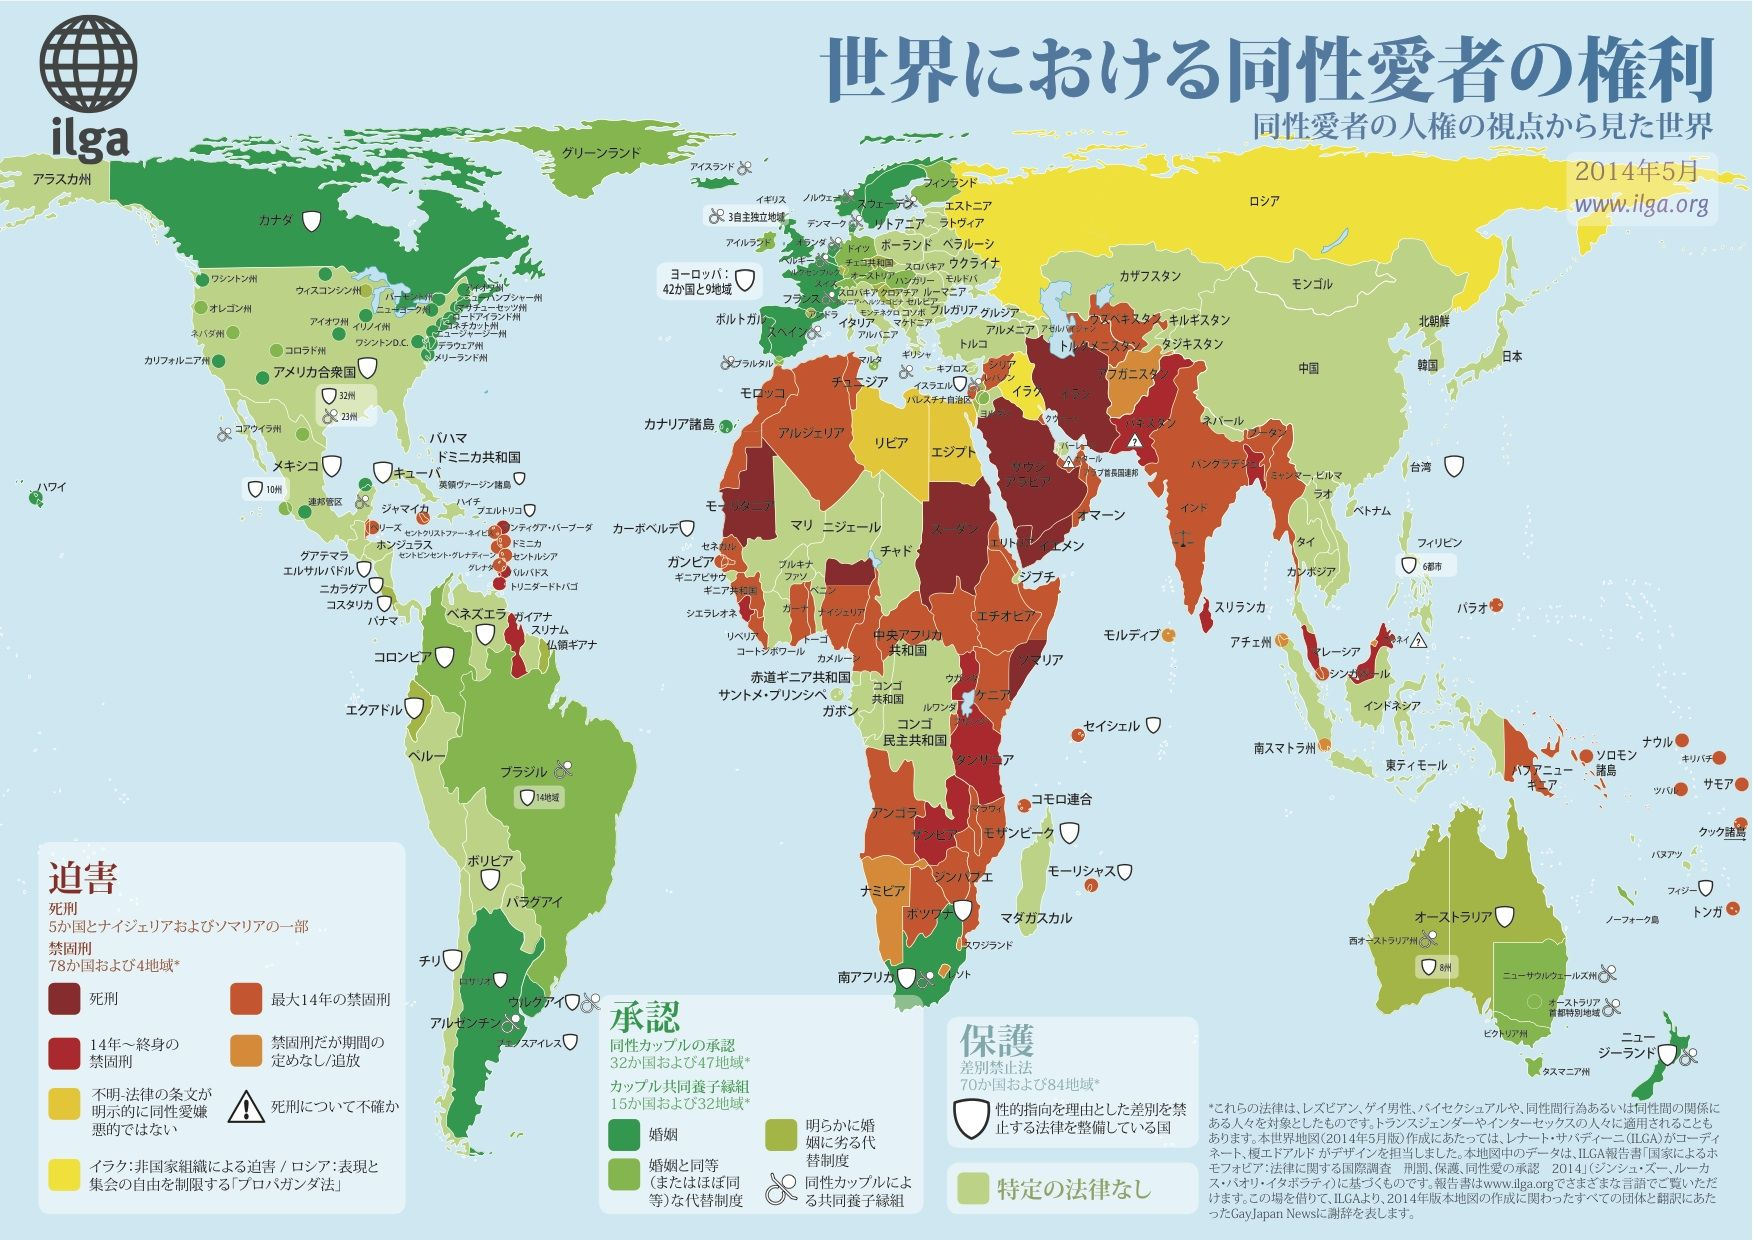 2014 japanese map on homosexual rights by ilga map world 2014 japanese map on homosexual rights by ilga map world gumiabroncs Gallery